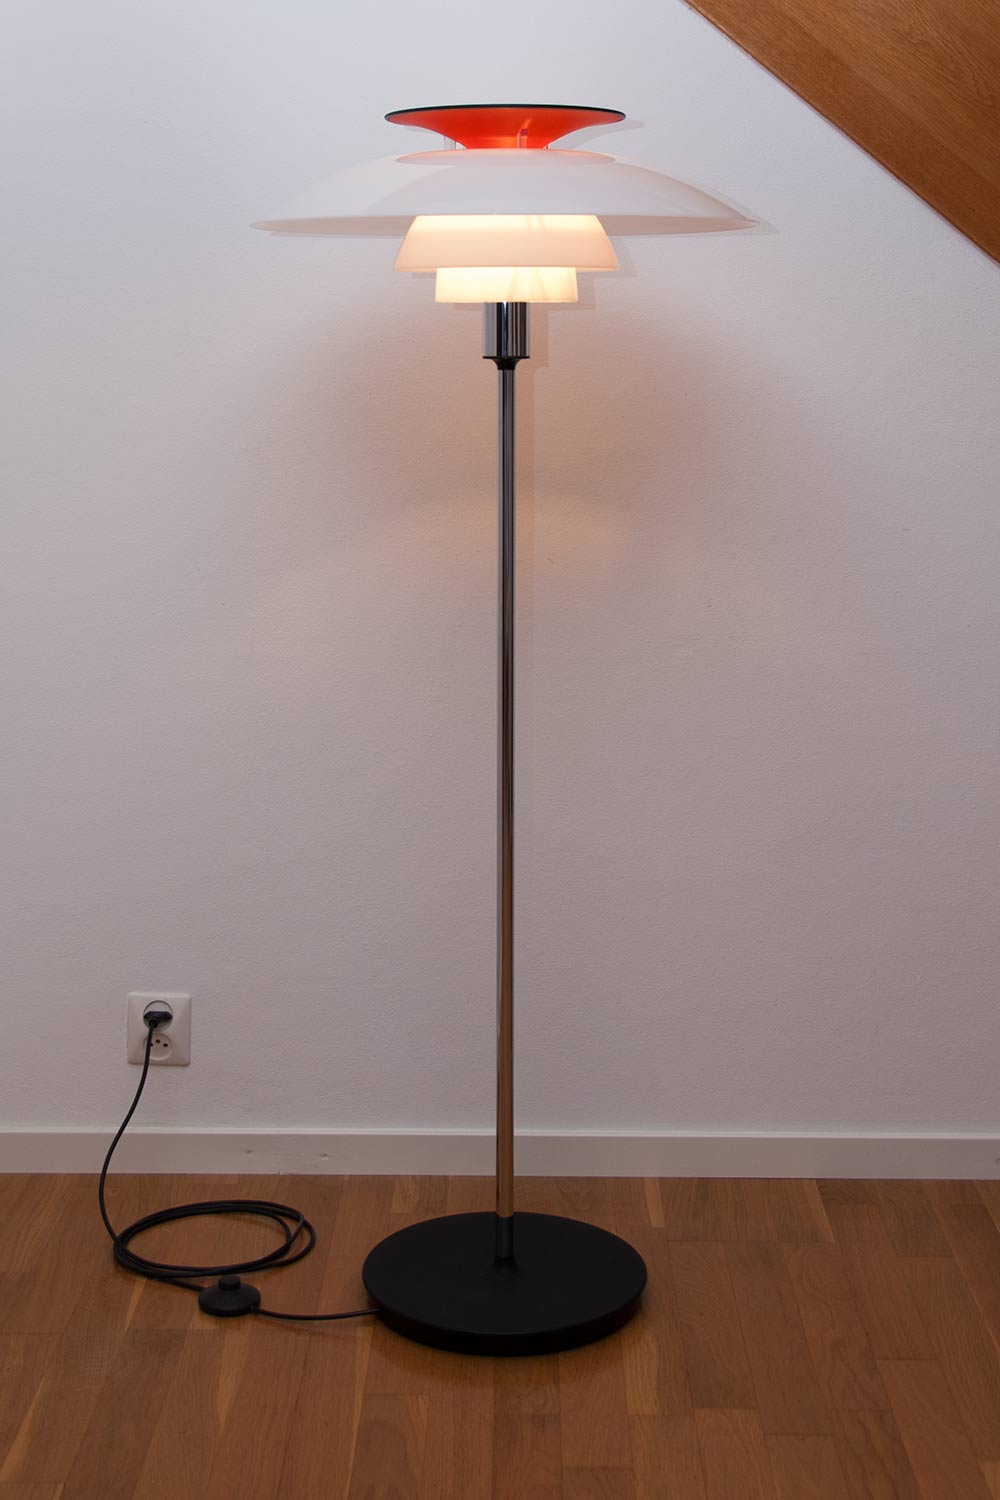 poul henningsen ph 80 floor lamp scandinavian design. Black Bedroom Furniture Sets. Home Design Ideas